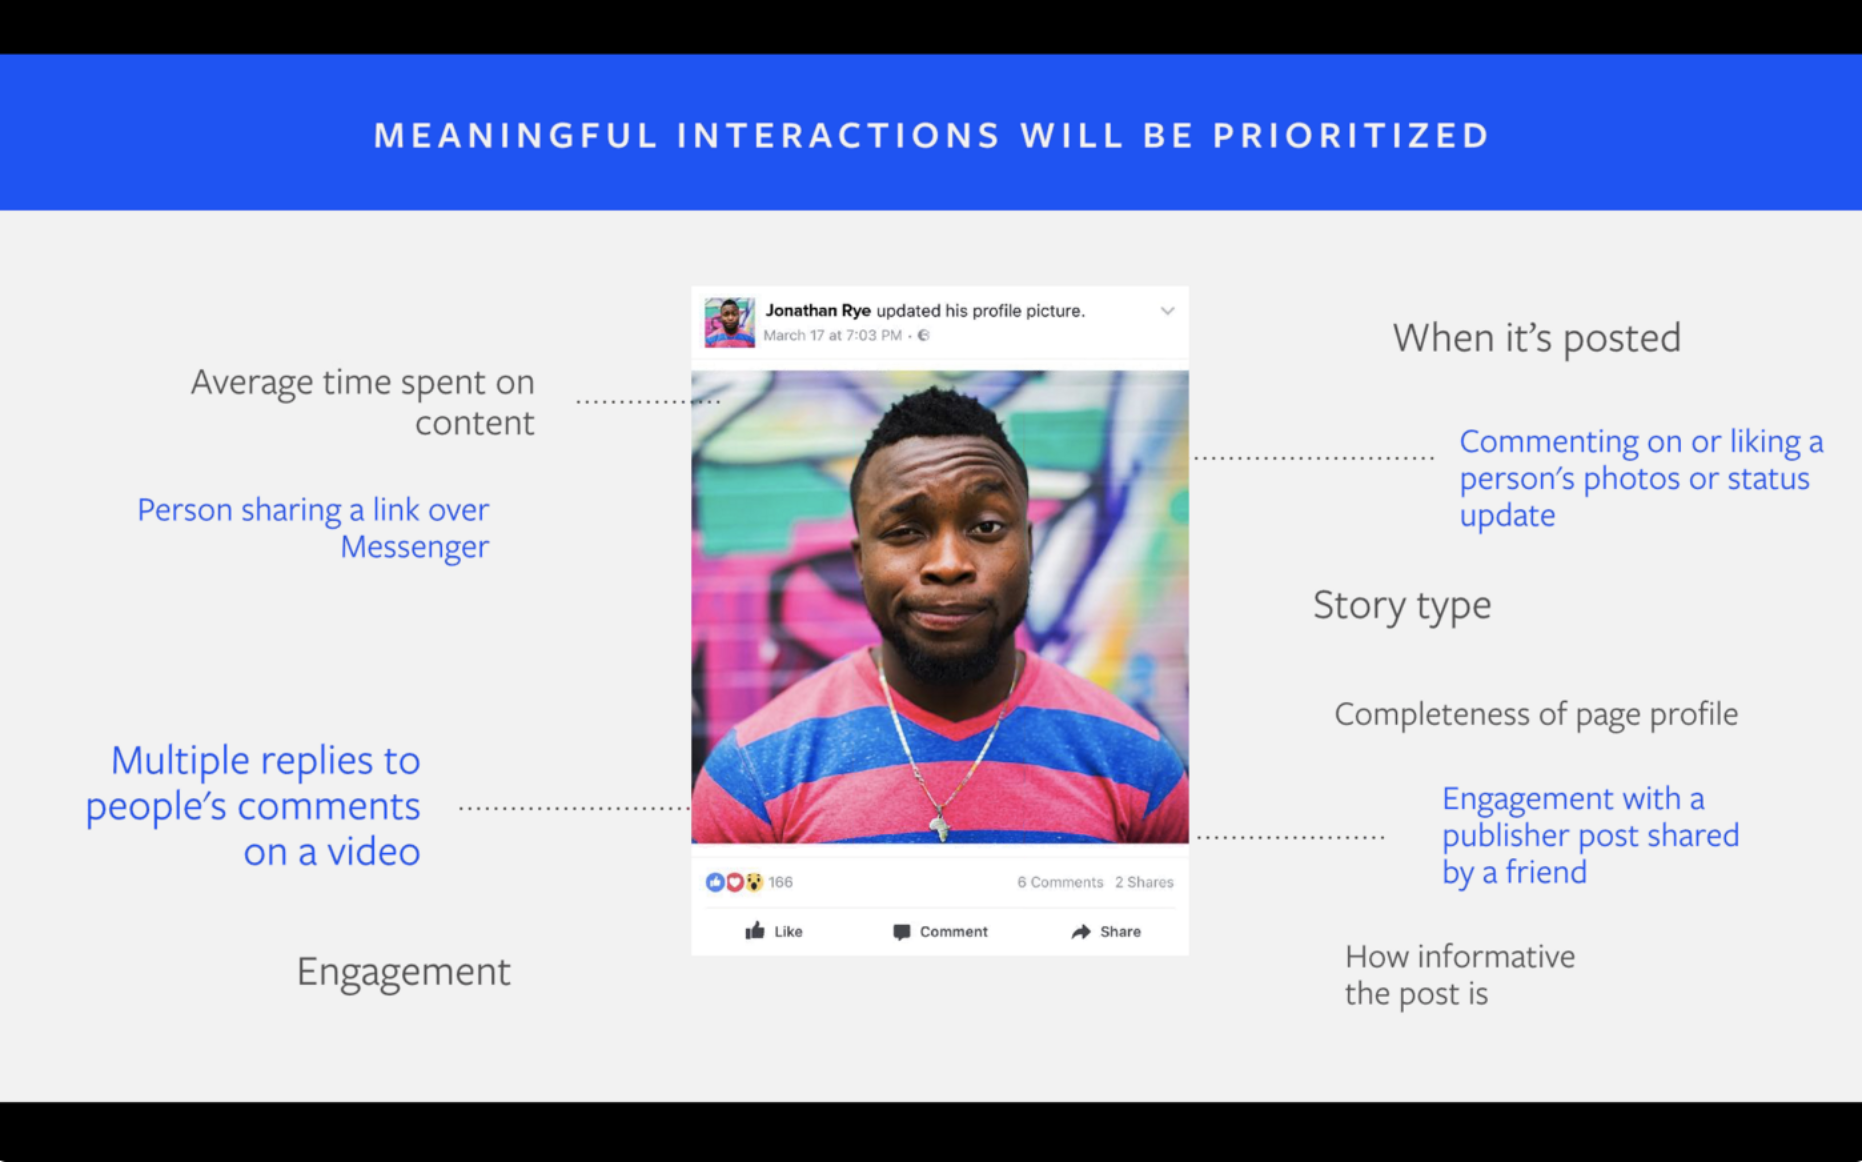 Facebook's algorithm uses several factors to determine which content to prioritize.